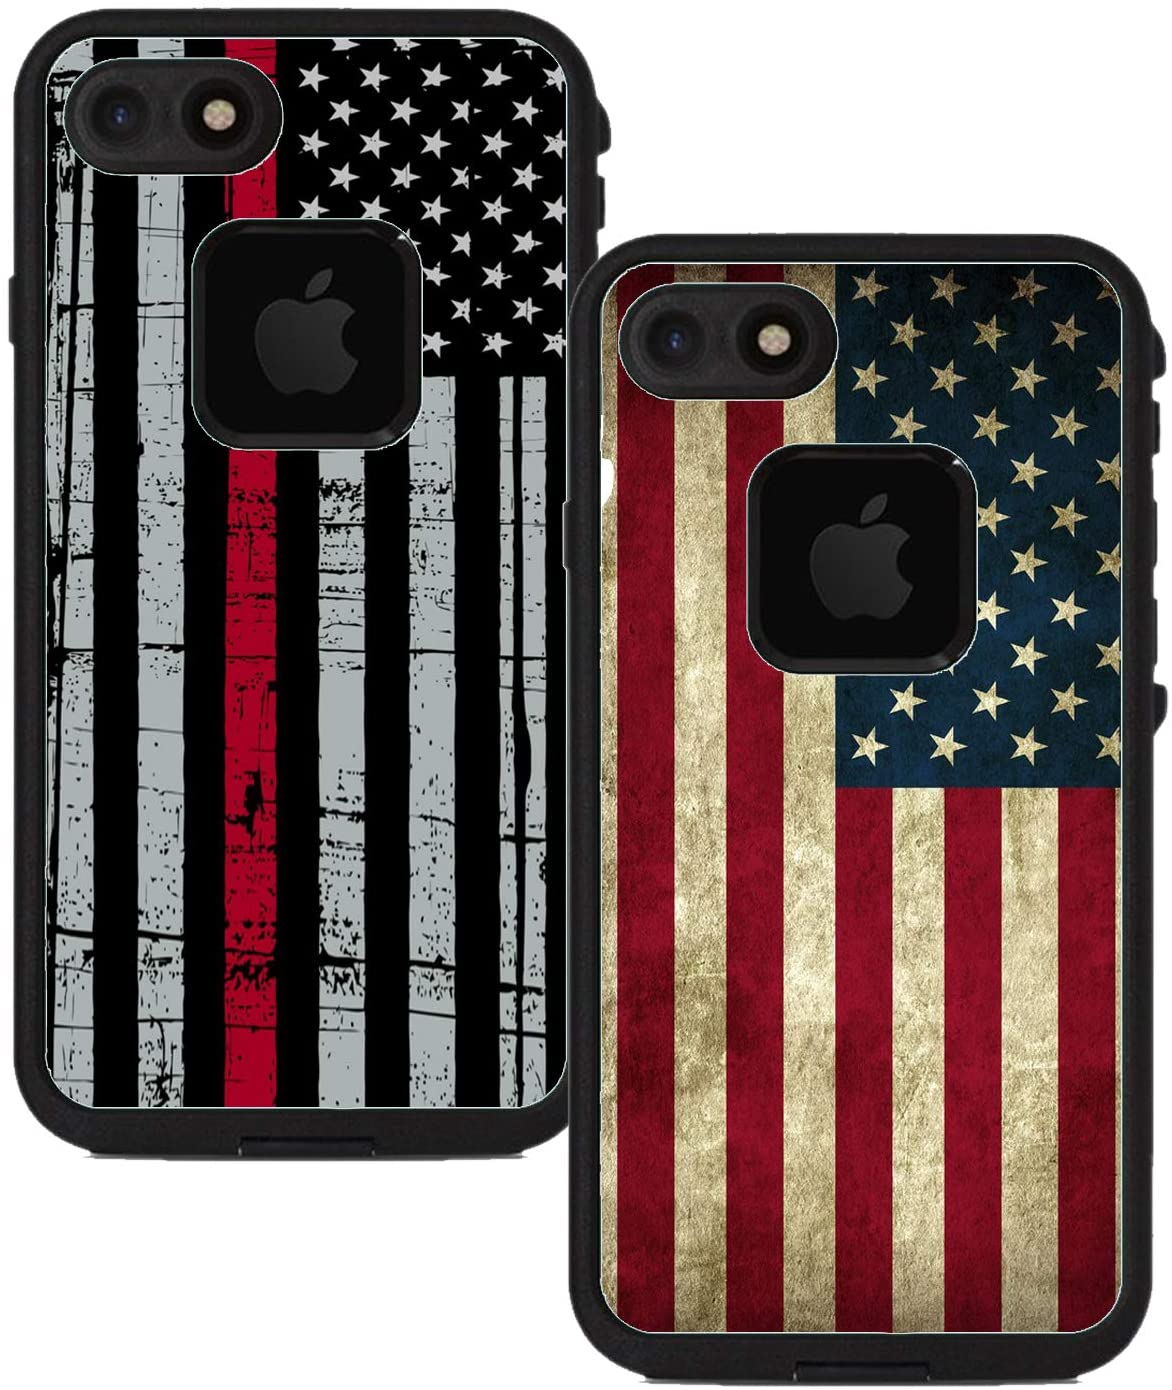 Teleskins Protective Designer Vinyl Skin Decals Compatible with Lifeproof Fre iPhone 7 / iPhone 8 Case - Thin Red Line USA Police Flag and Grunge USA American Flag [Pack of 2 Skins]